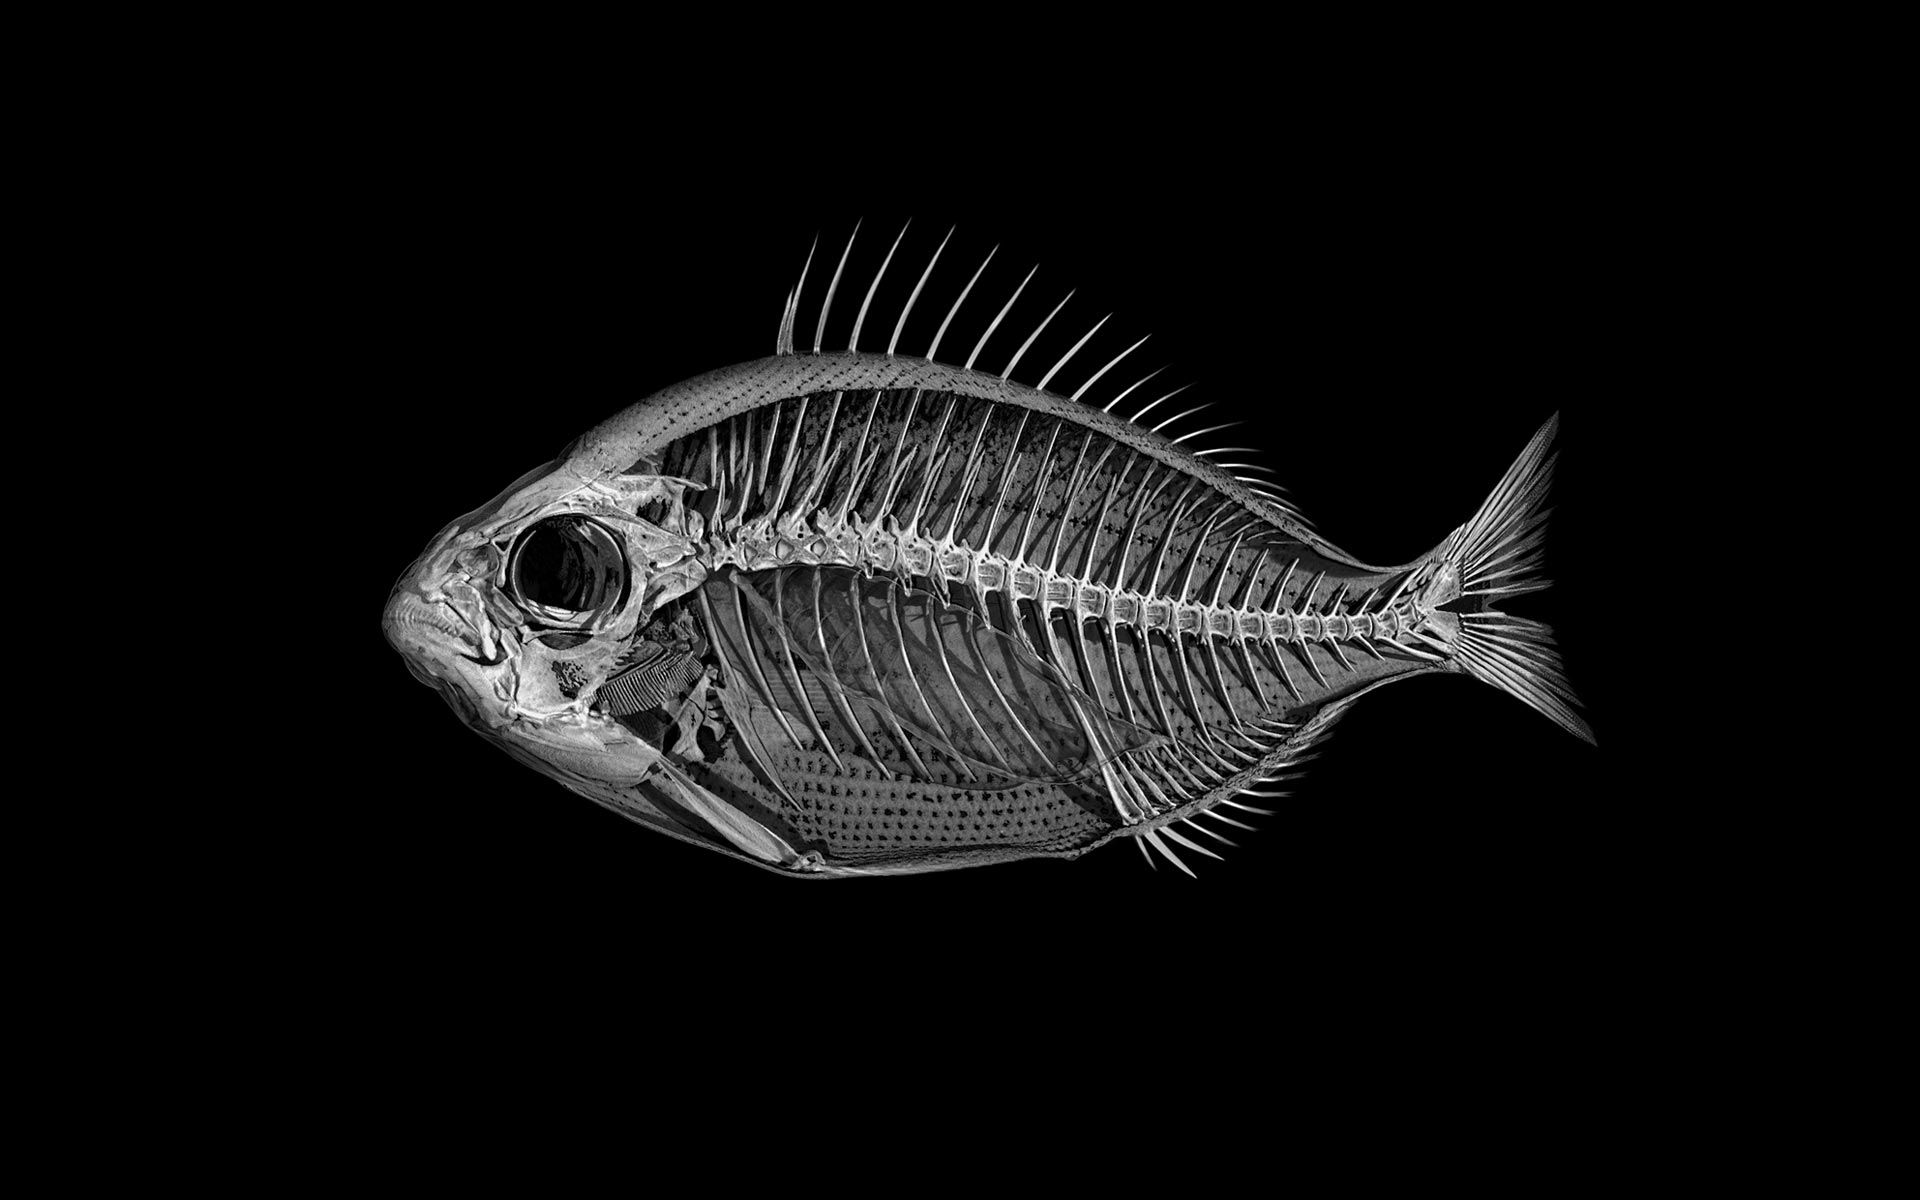 Giles Revell From The Project Fish Deconstruction